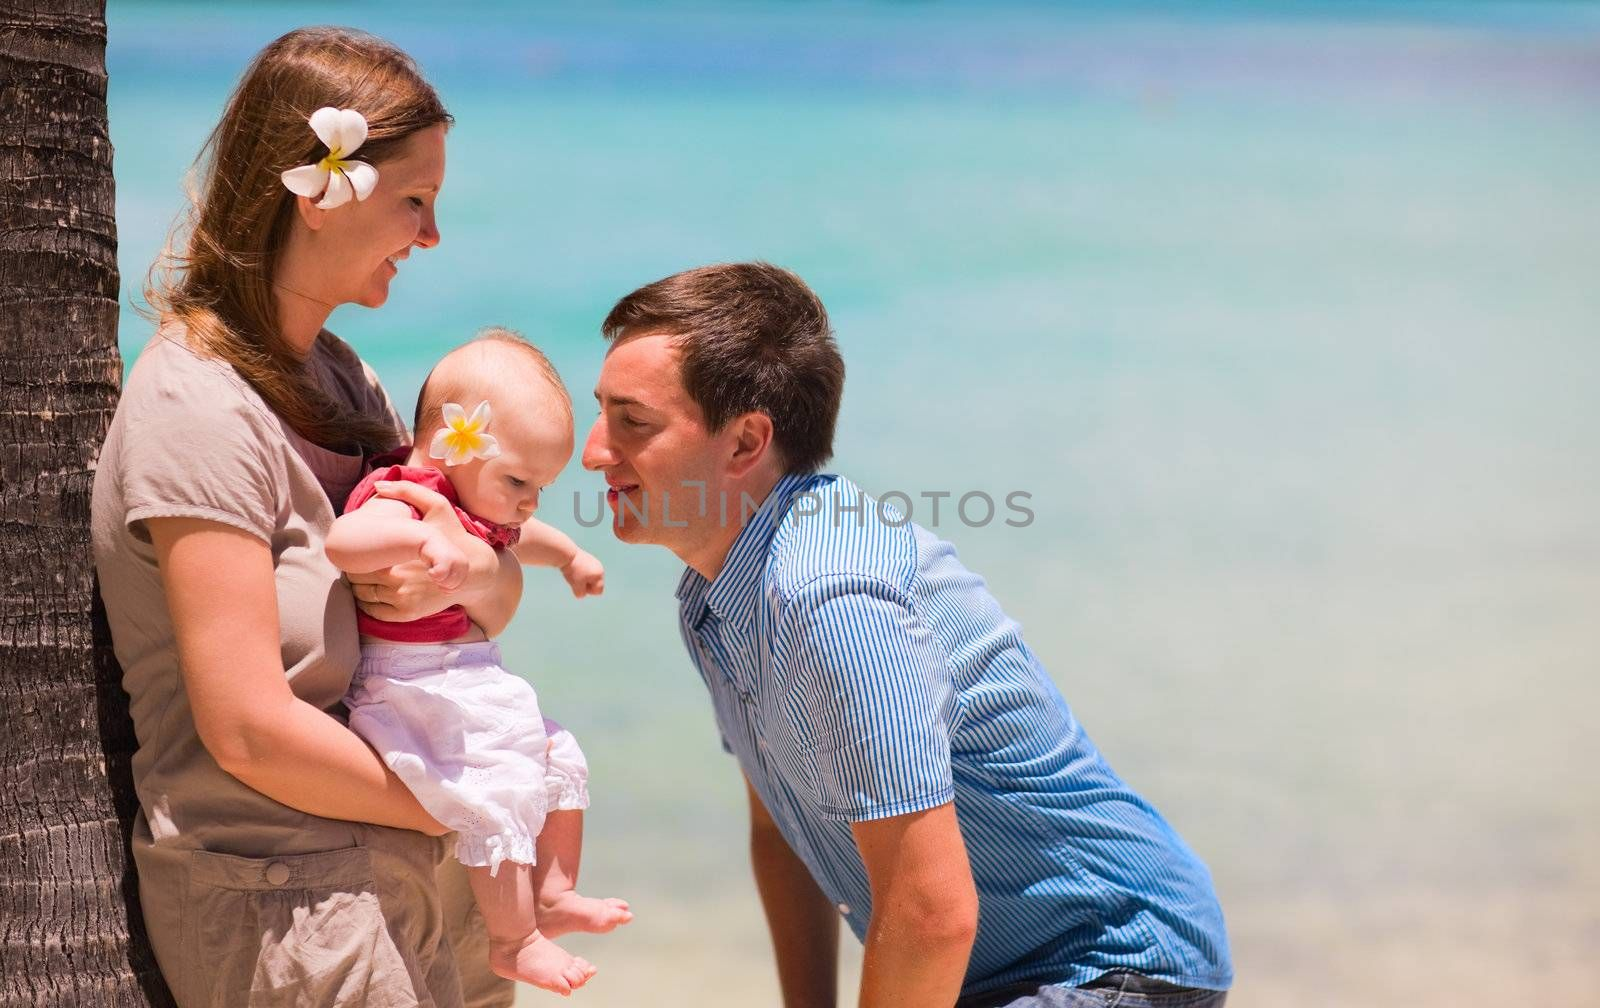 Family vacation. Young family of three on vacation